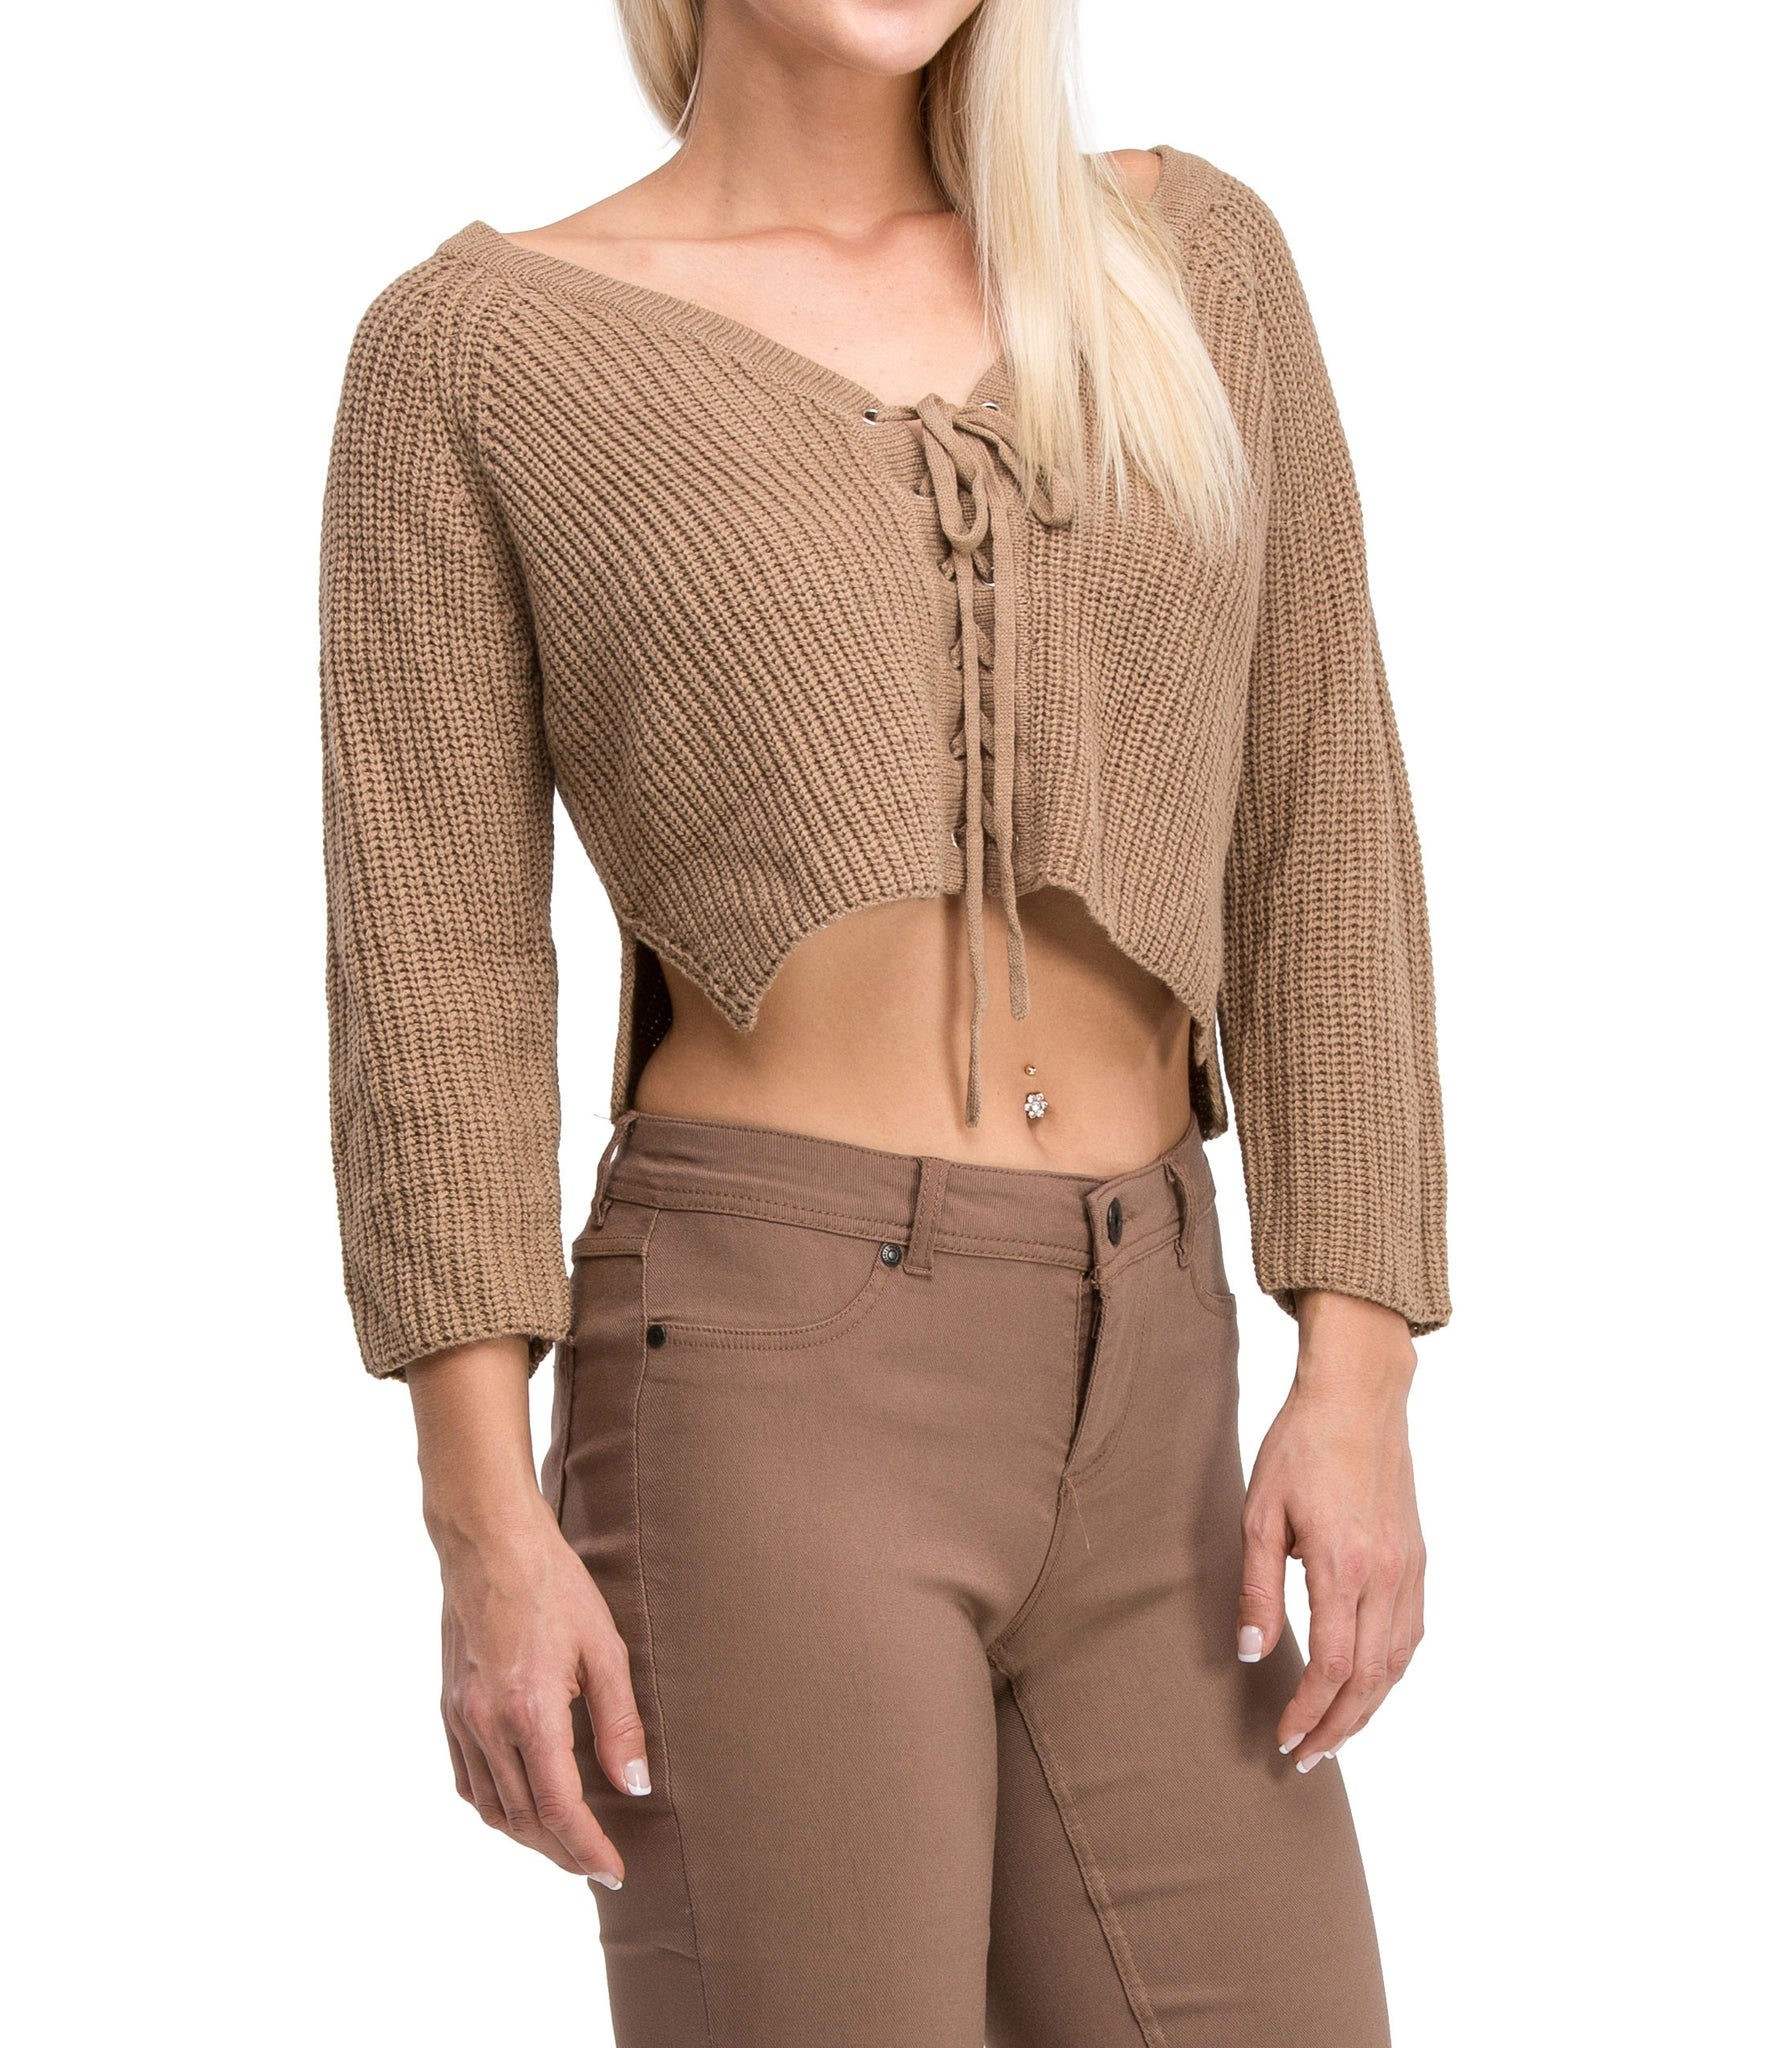 Irresistible Sexy Medium Sleeve Lace Up Crop Top Sweater (Mocha) - Poplooks